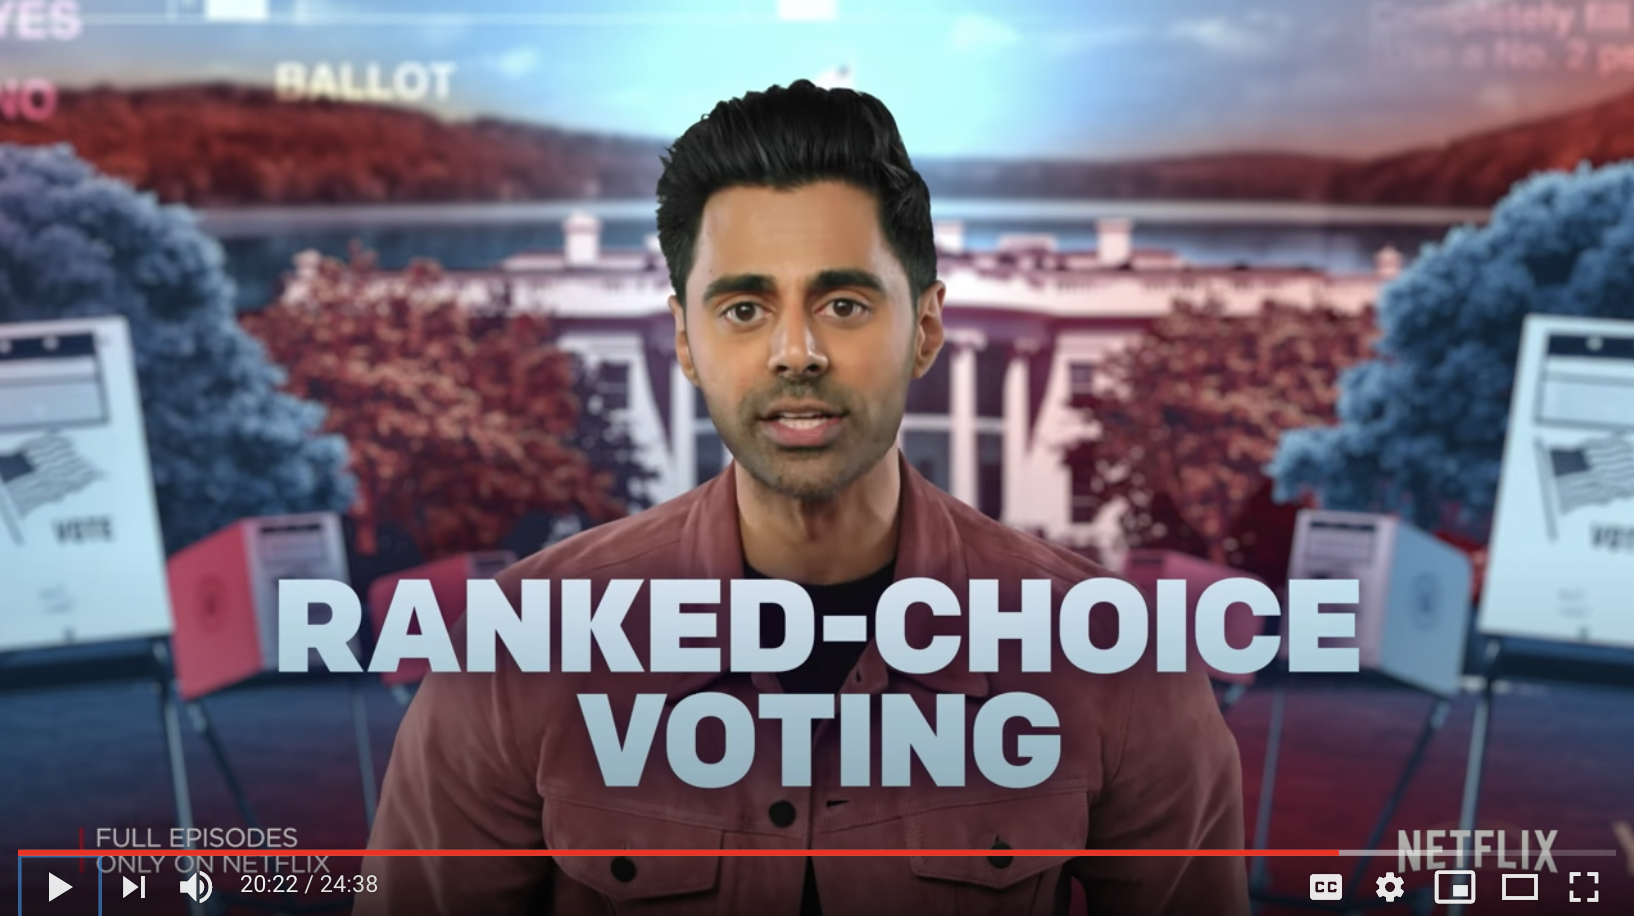 Hasan Minhaj Endorses Ranked Choice Voting In Episode of Patriot Act